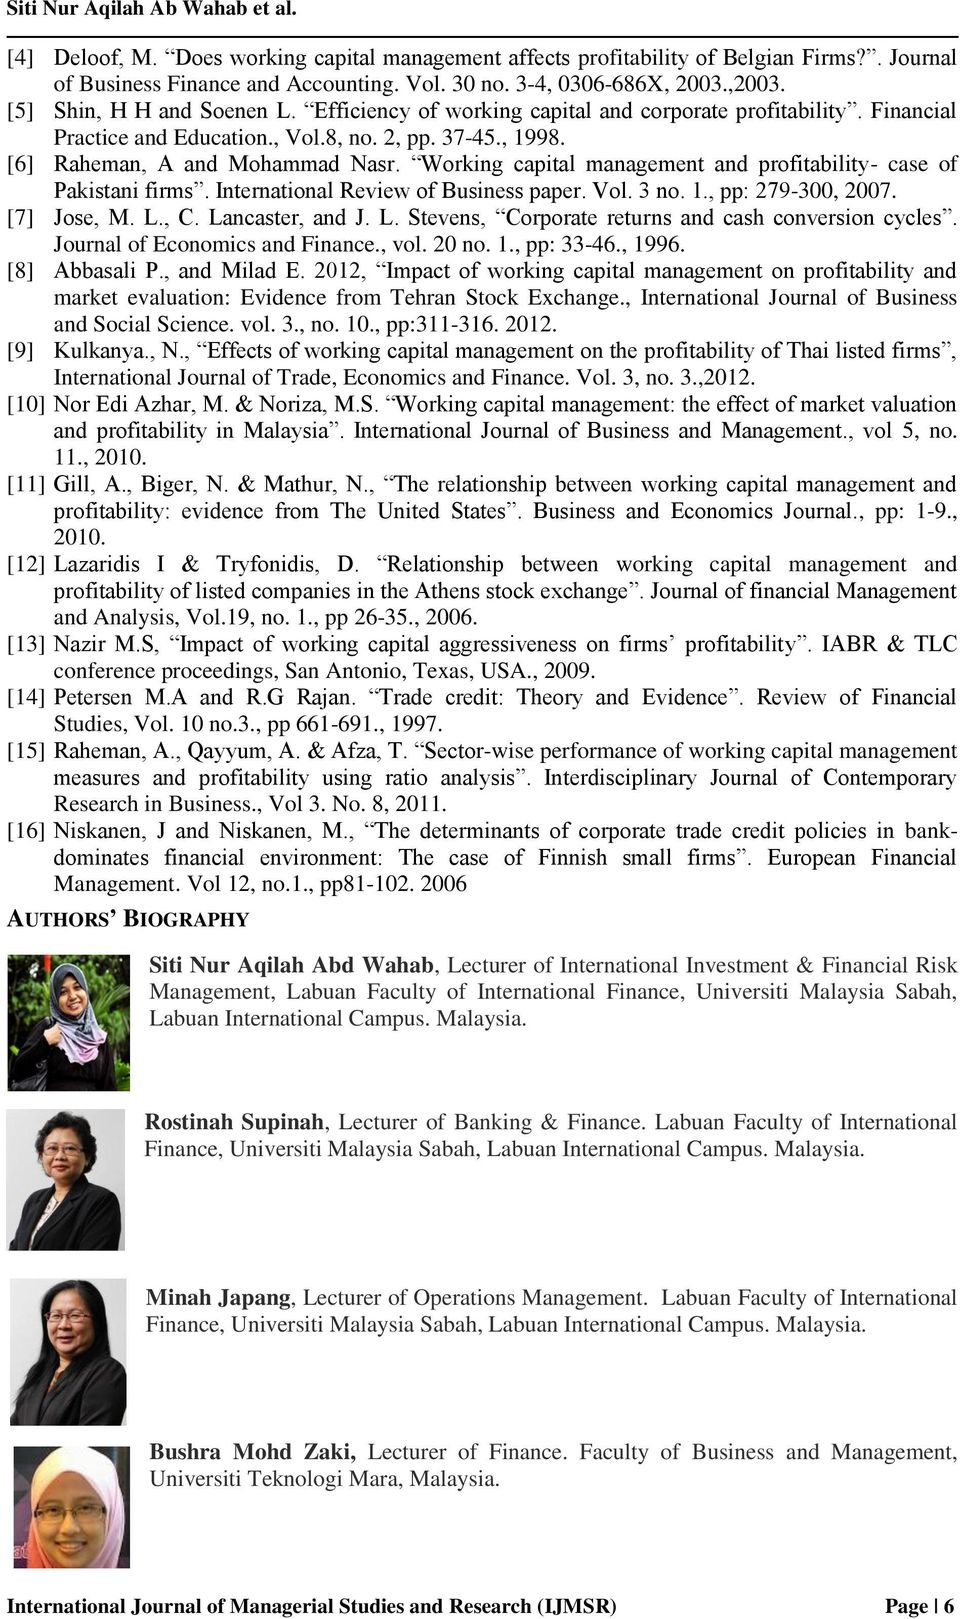 Working capital management and profitability- case of Pakistani firms. International Review of Business paper. Vol. 3 no. 1., pp: 279-300, 2007. [7] Jose, M. L.